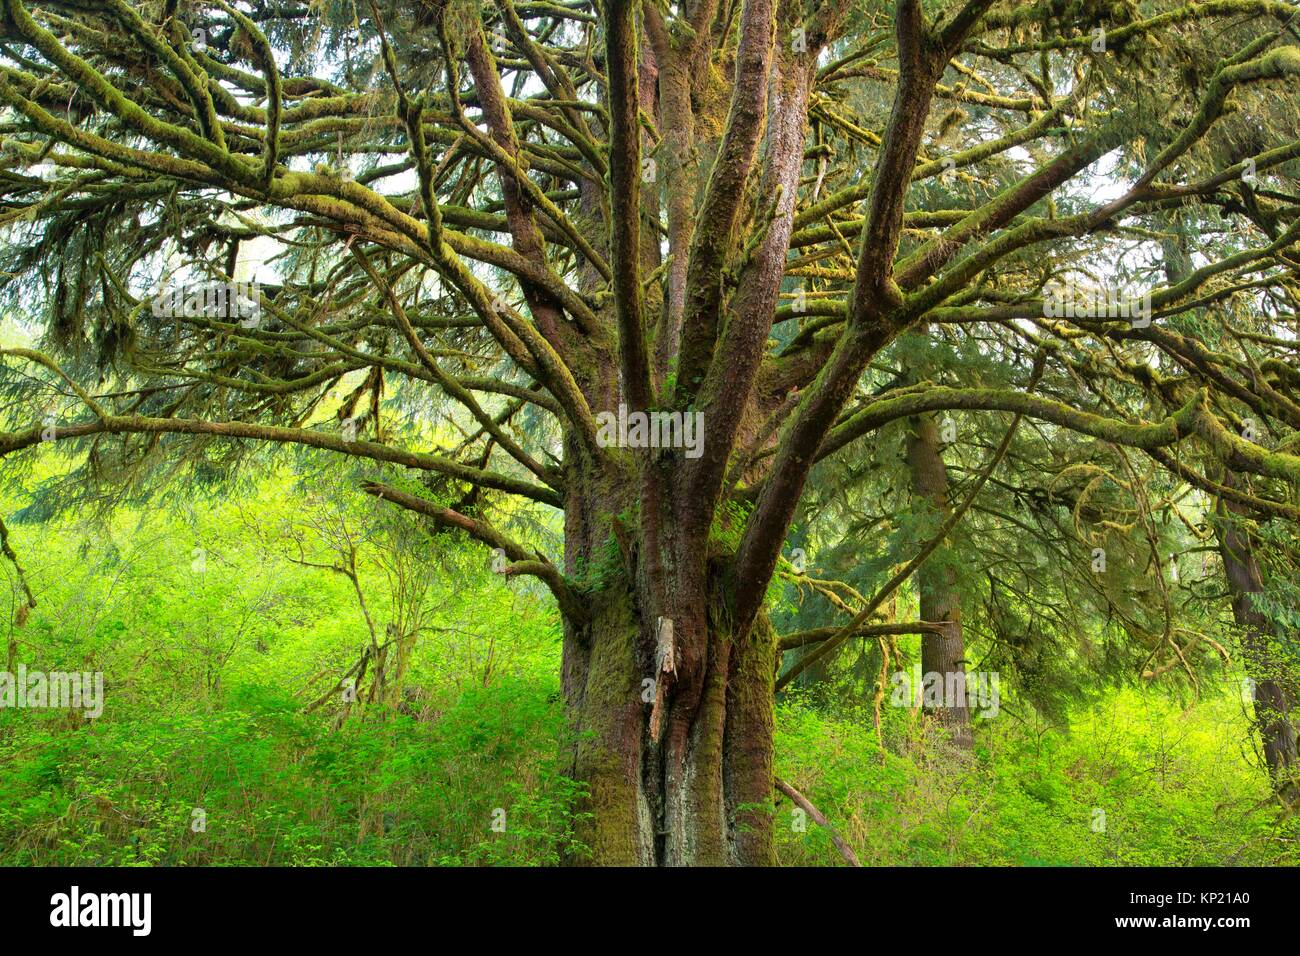 Sitka spruce (Picea sitchensis), Lincoln County, Oregon. - Stock Image